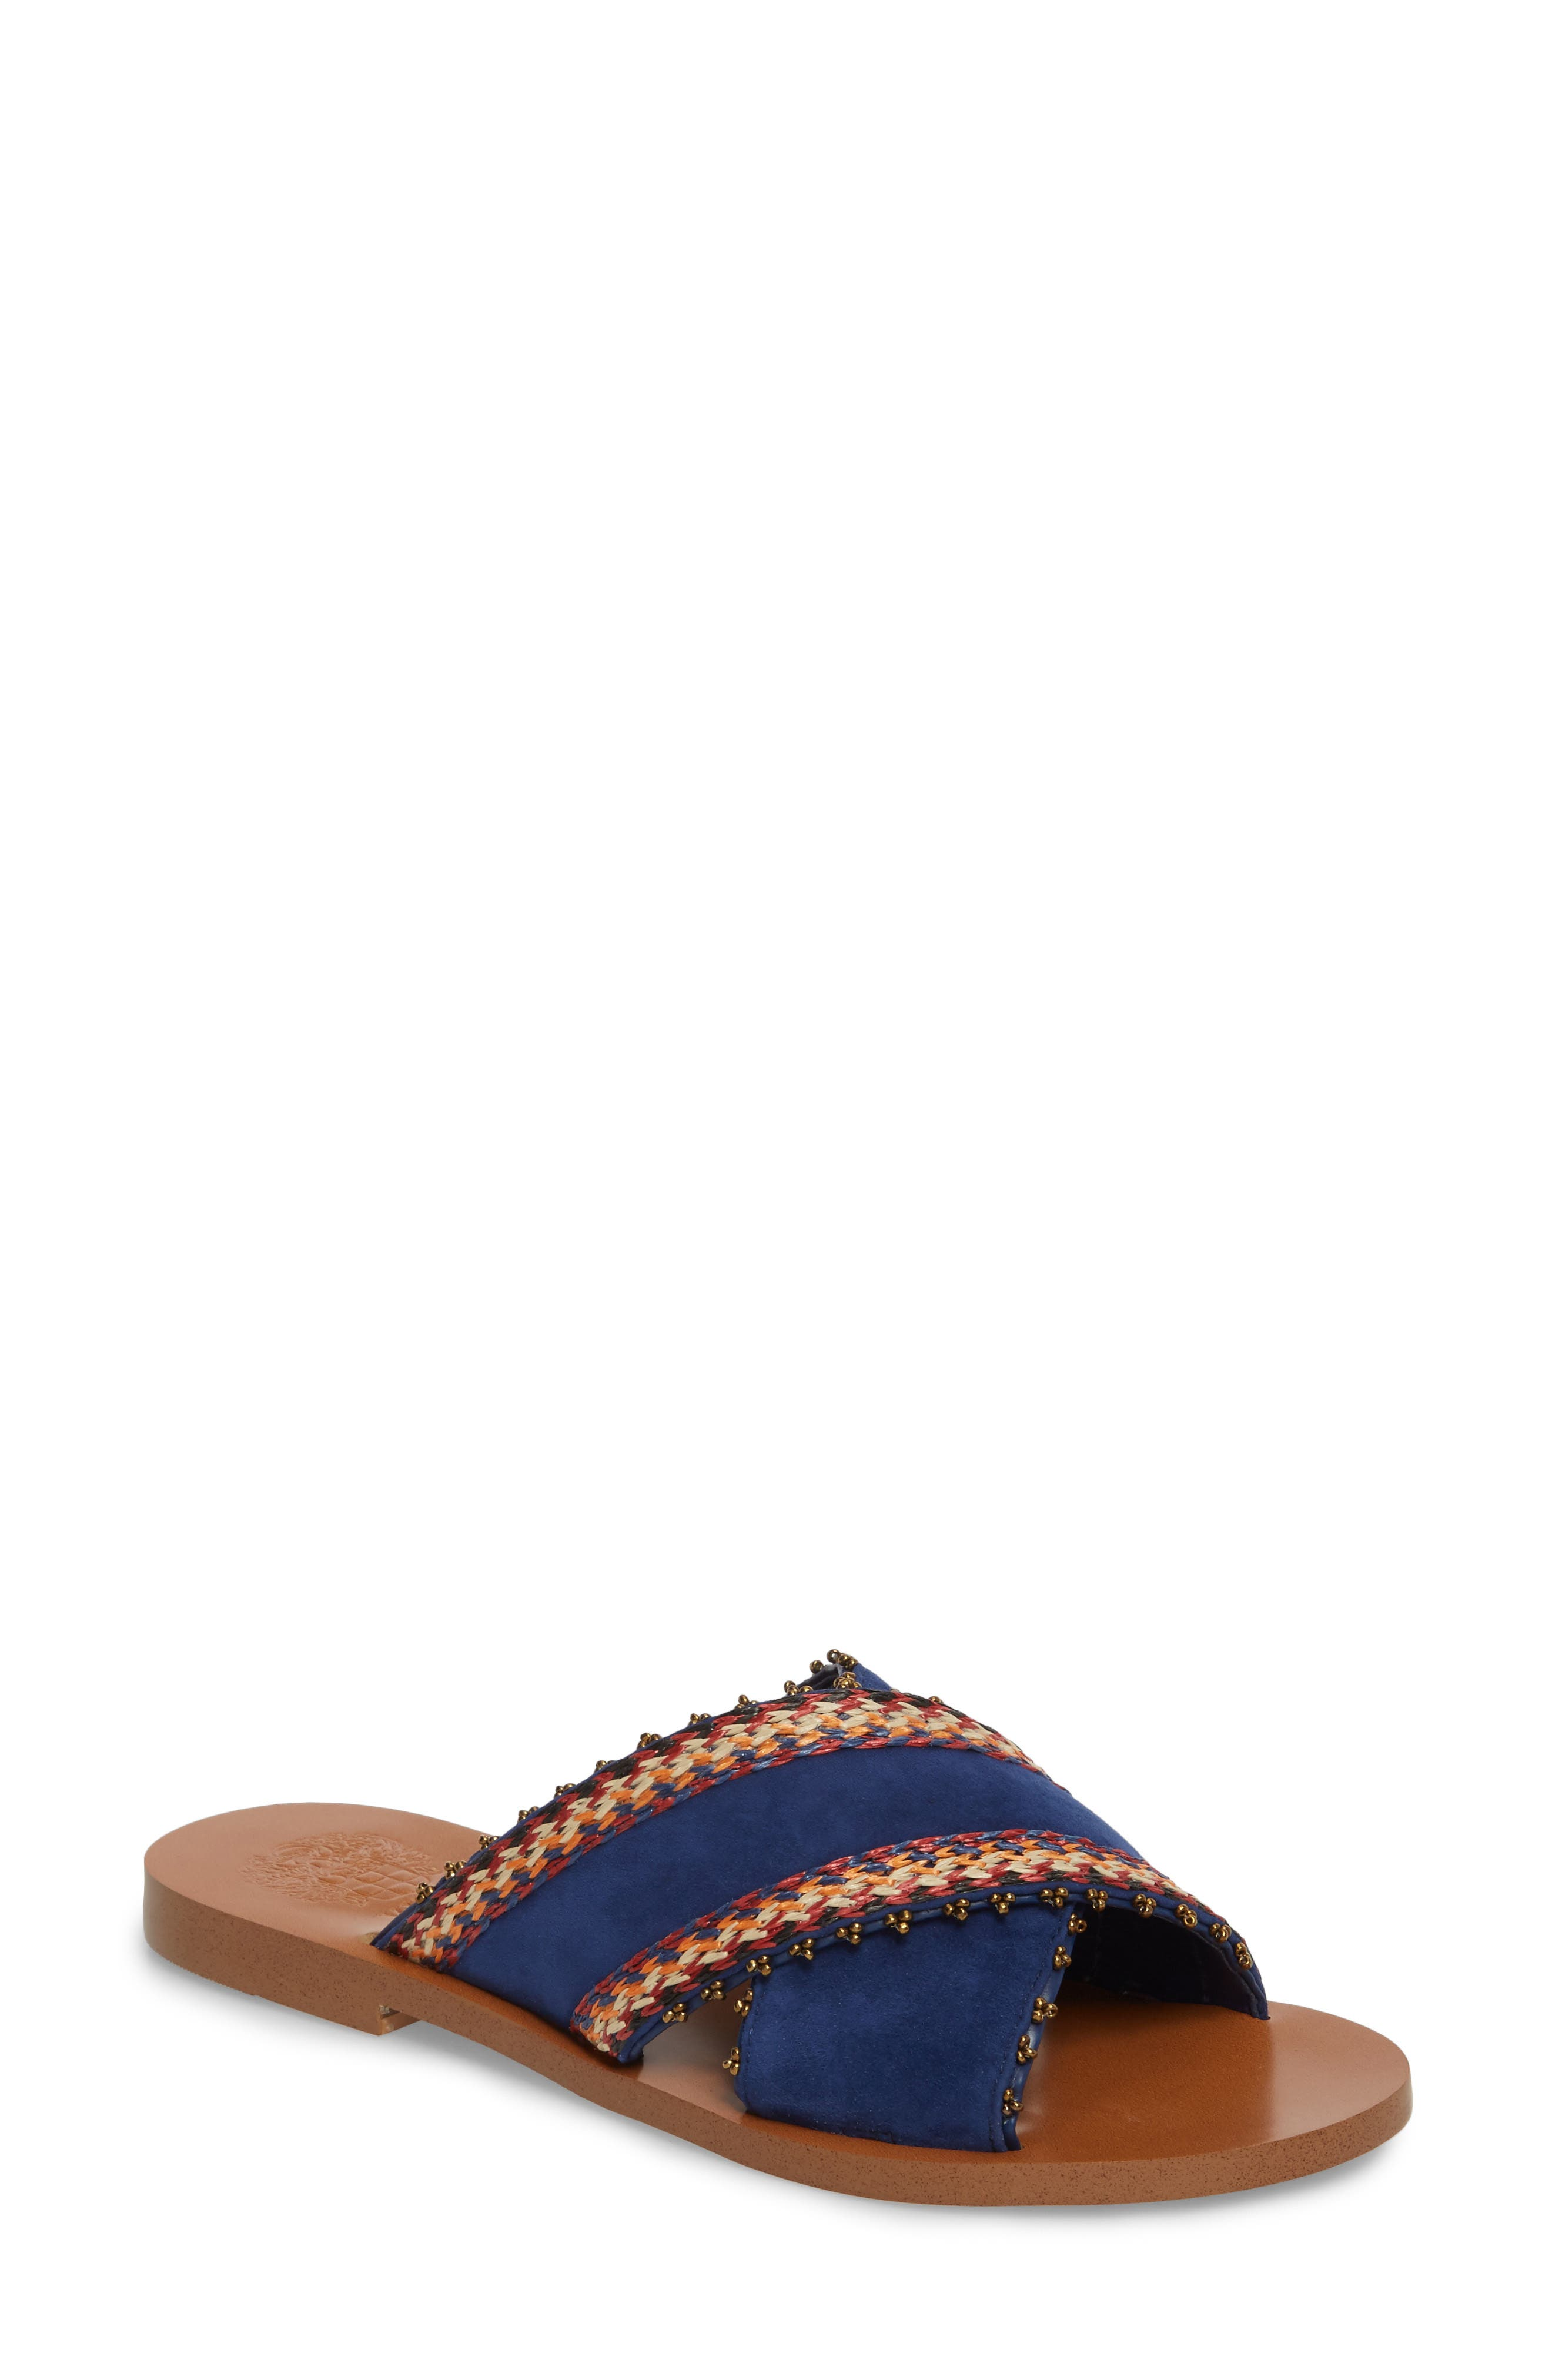 Averal Sandal,                         Main,                         color, Moody Blues/ Red Multi